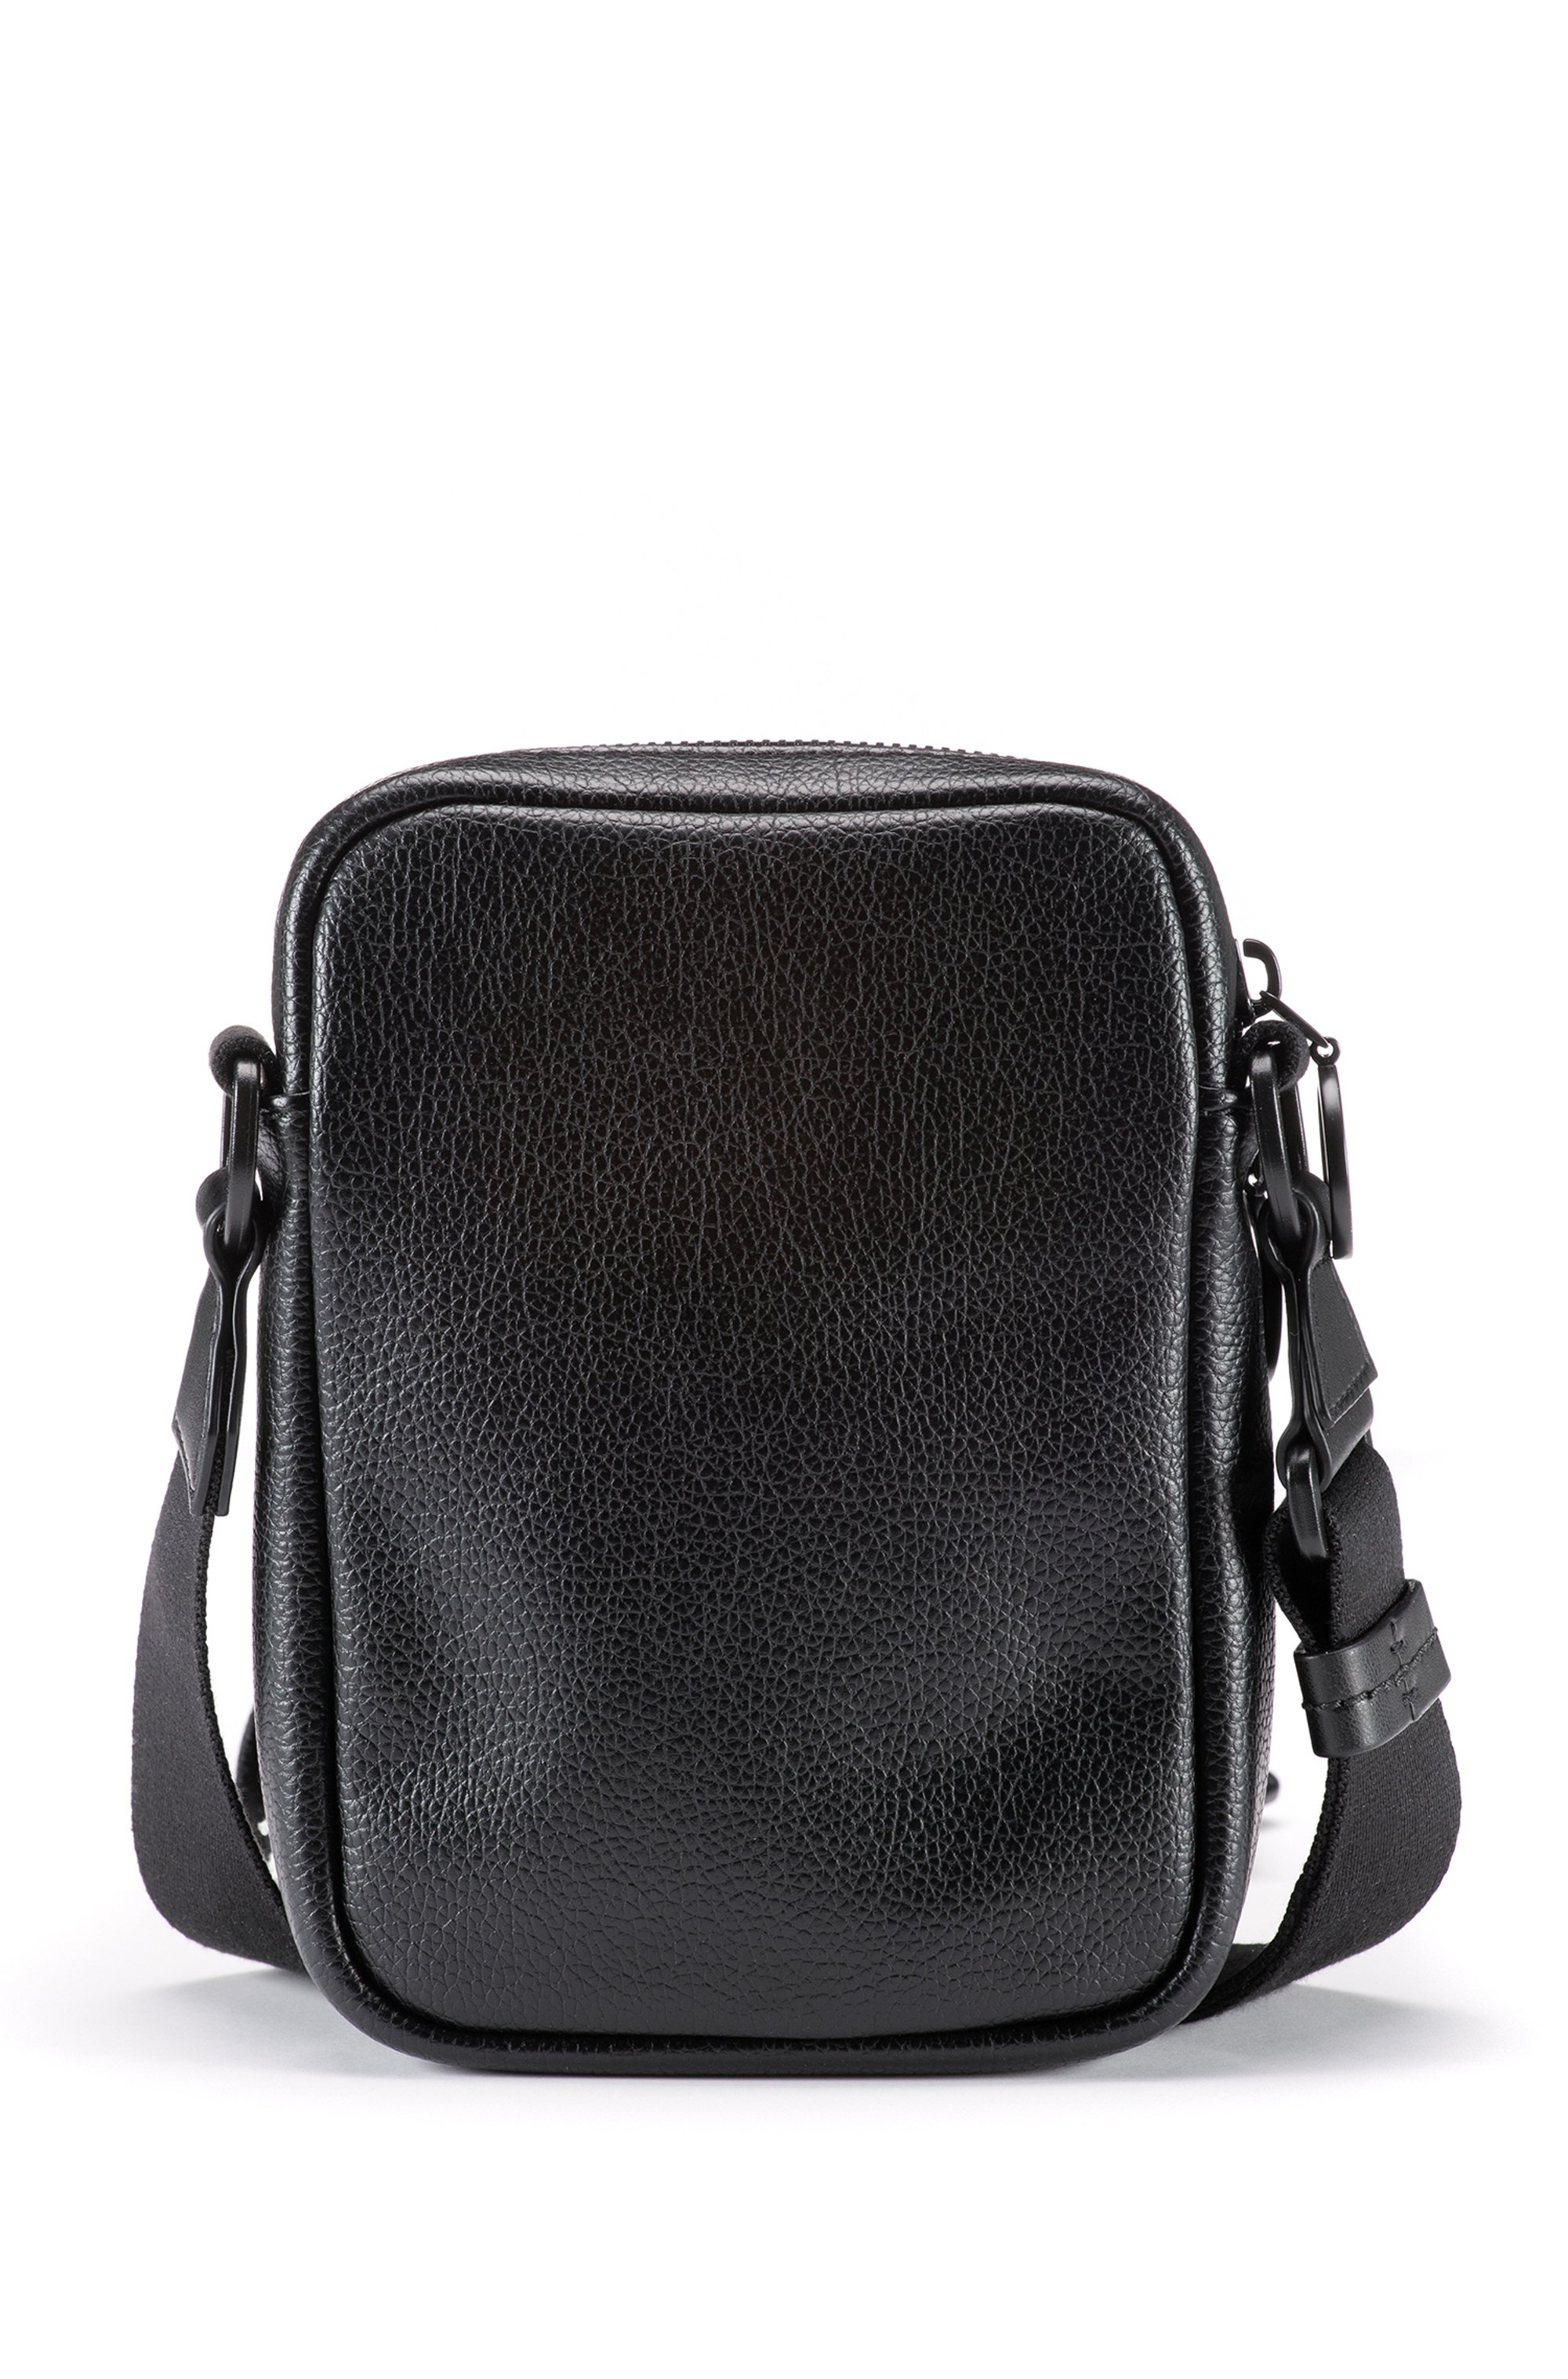 Reporter bag in grained faux leather with logo lettering